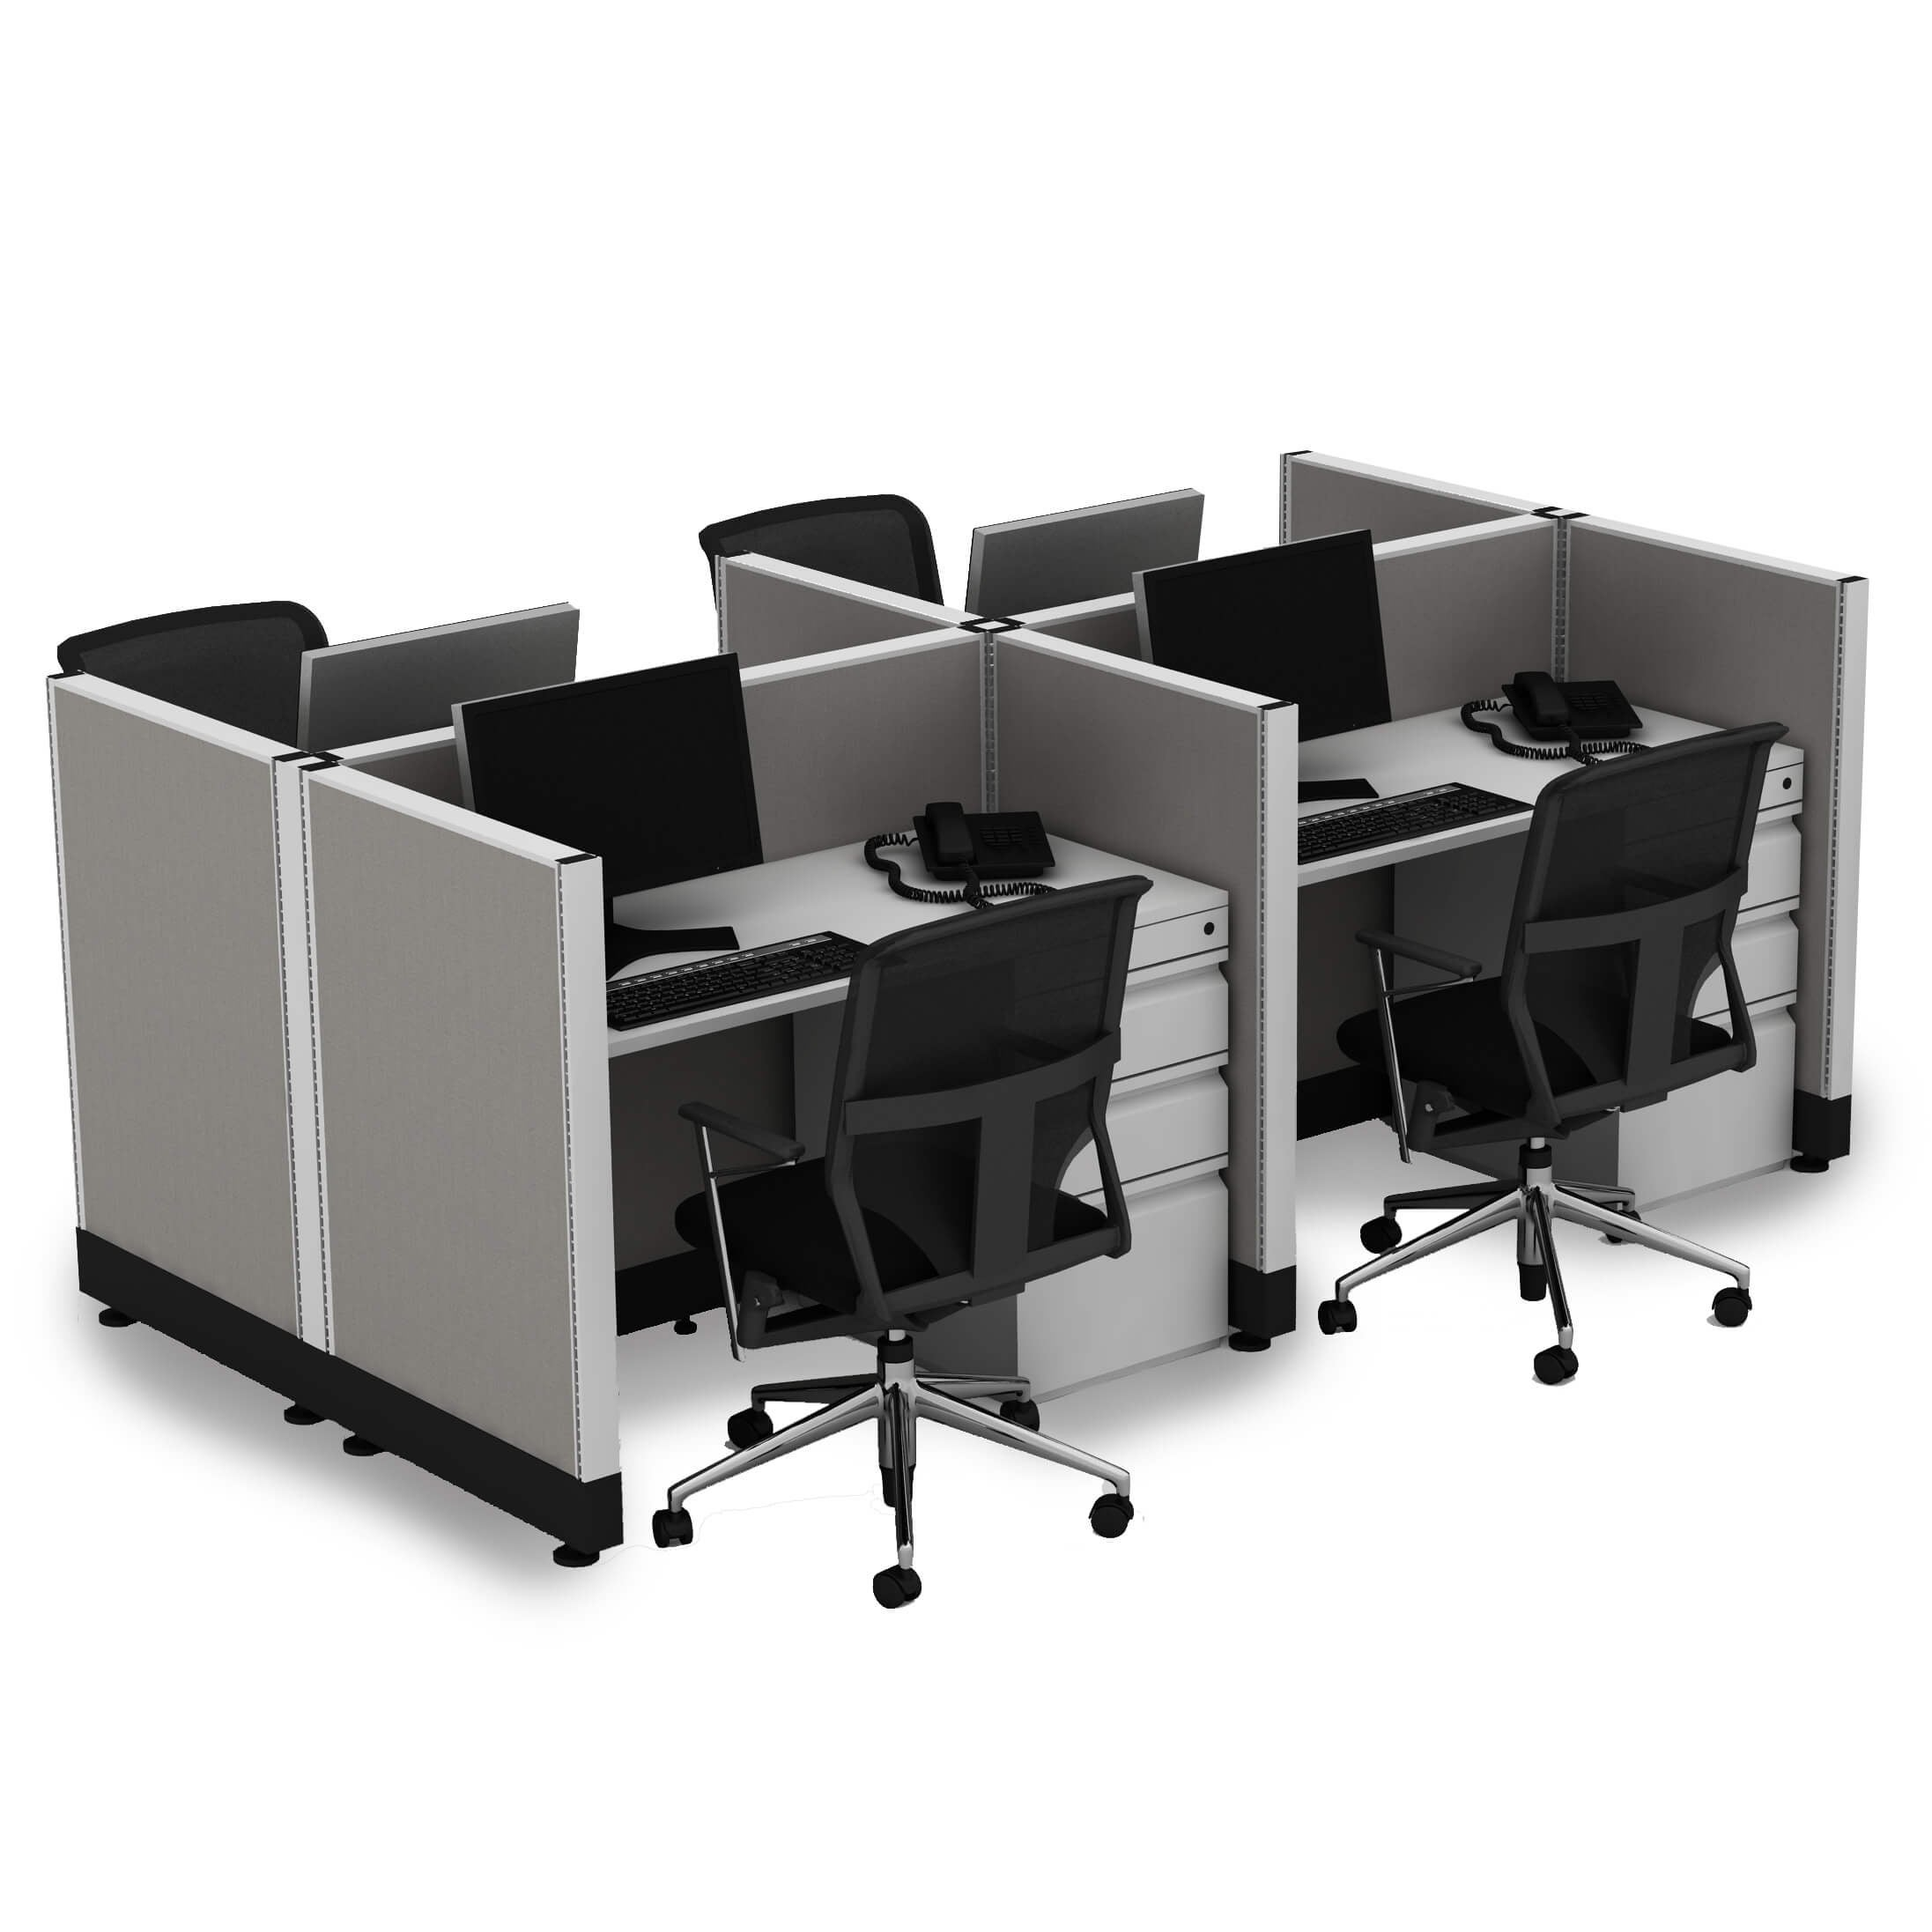 Small Cubicles 39H 4pack Cluster Powered (4x4 - White Desk Silver Paint - Assembly Required)